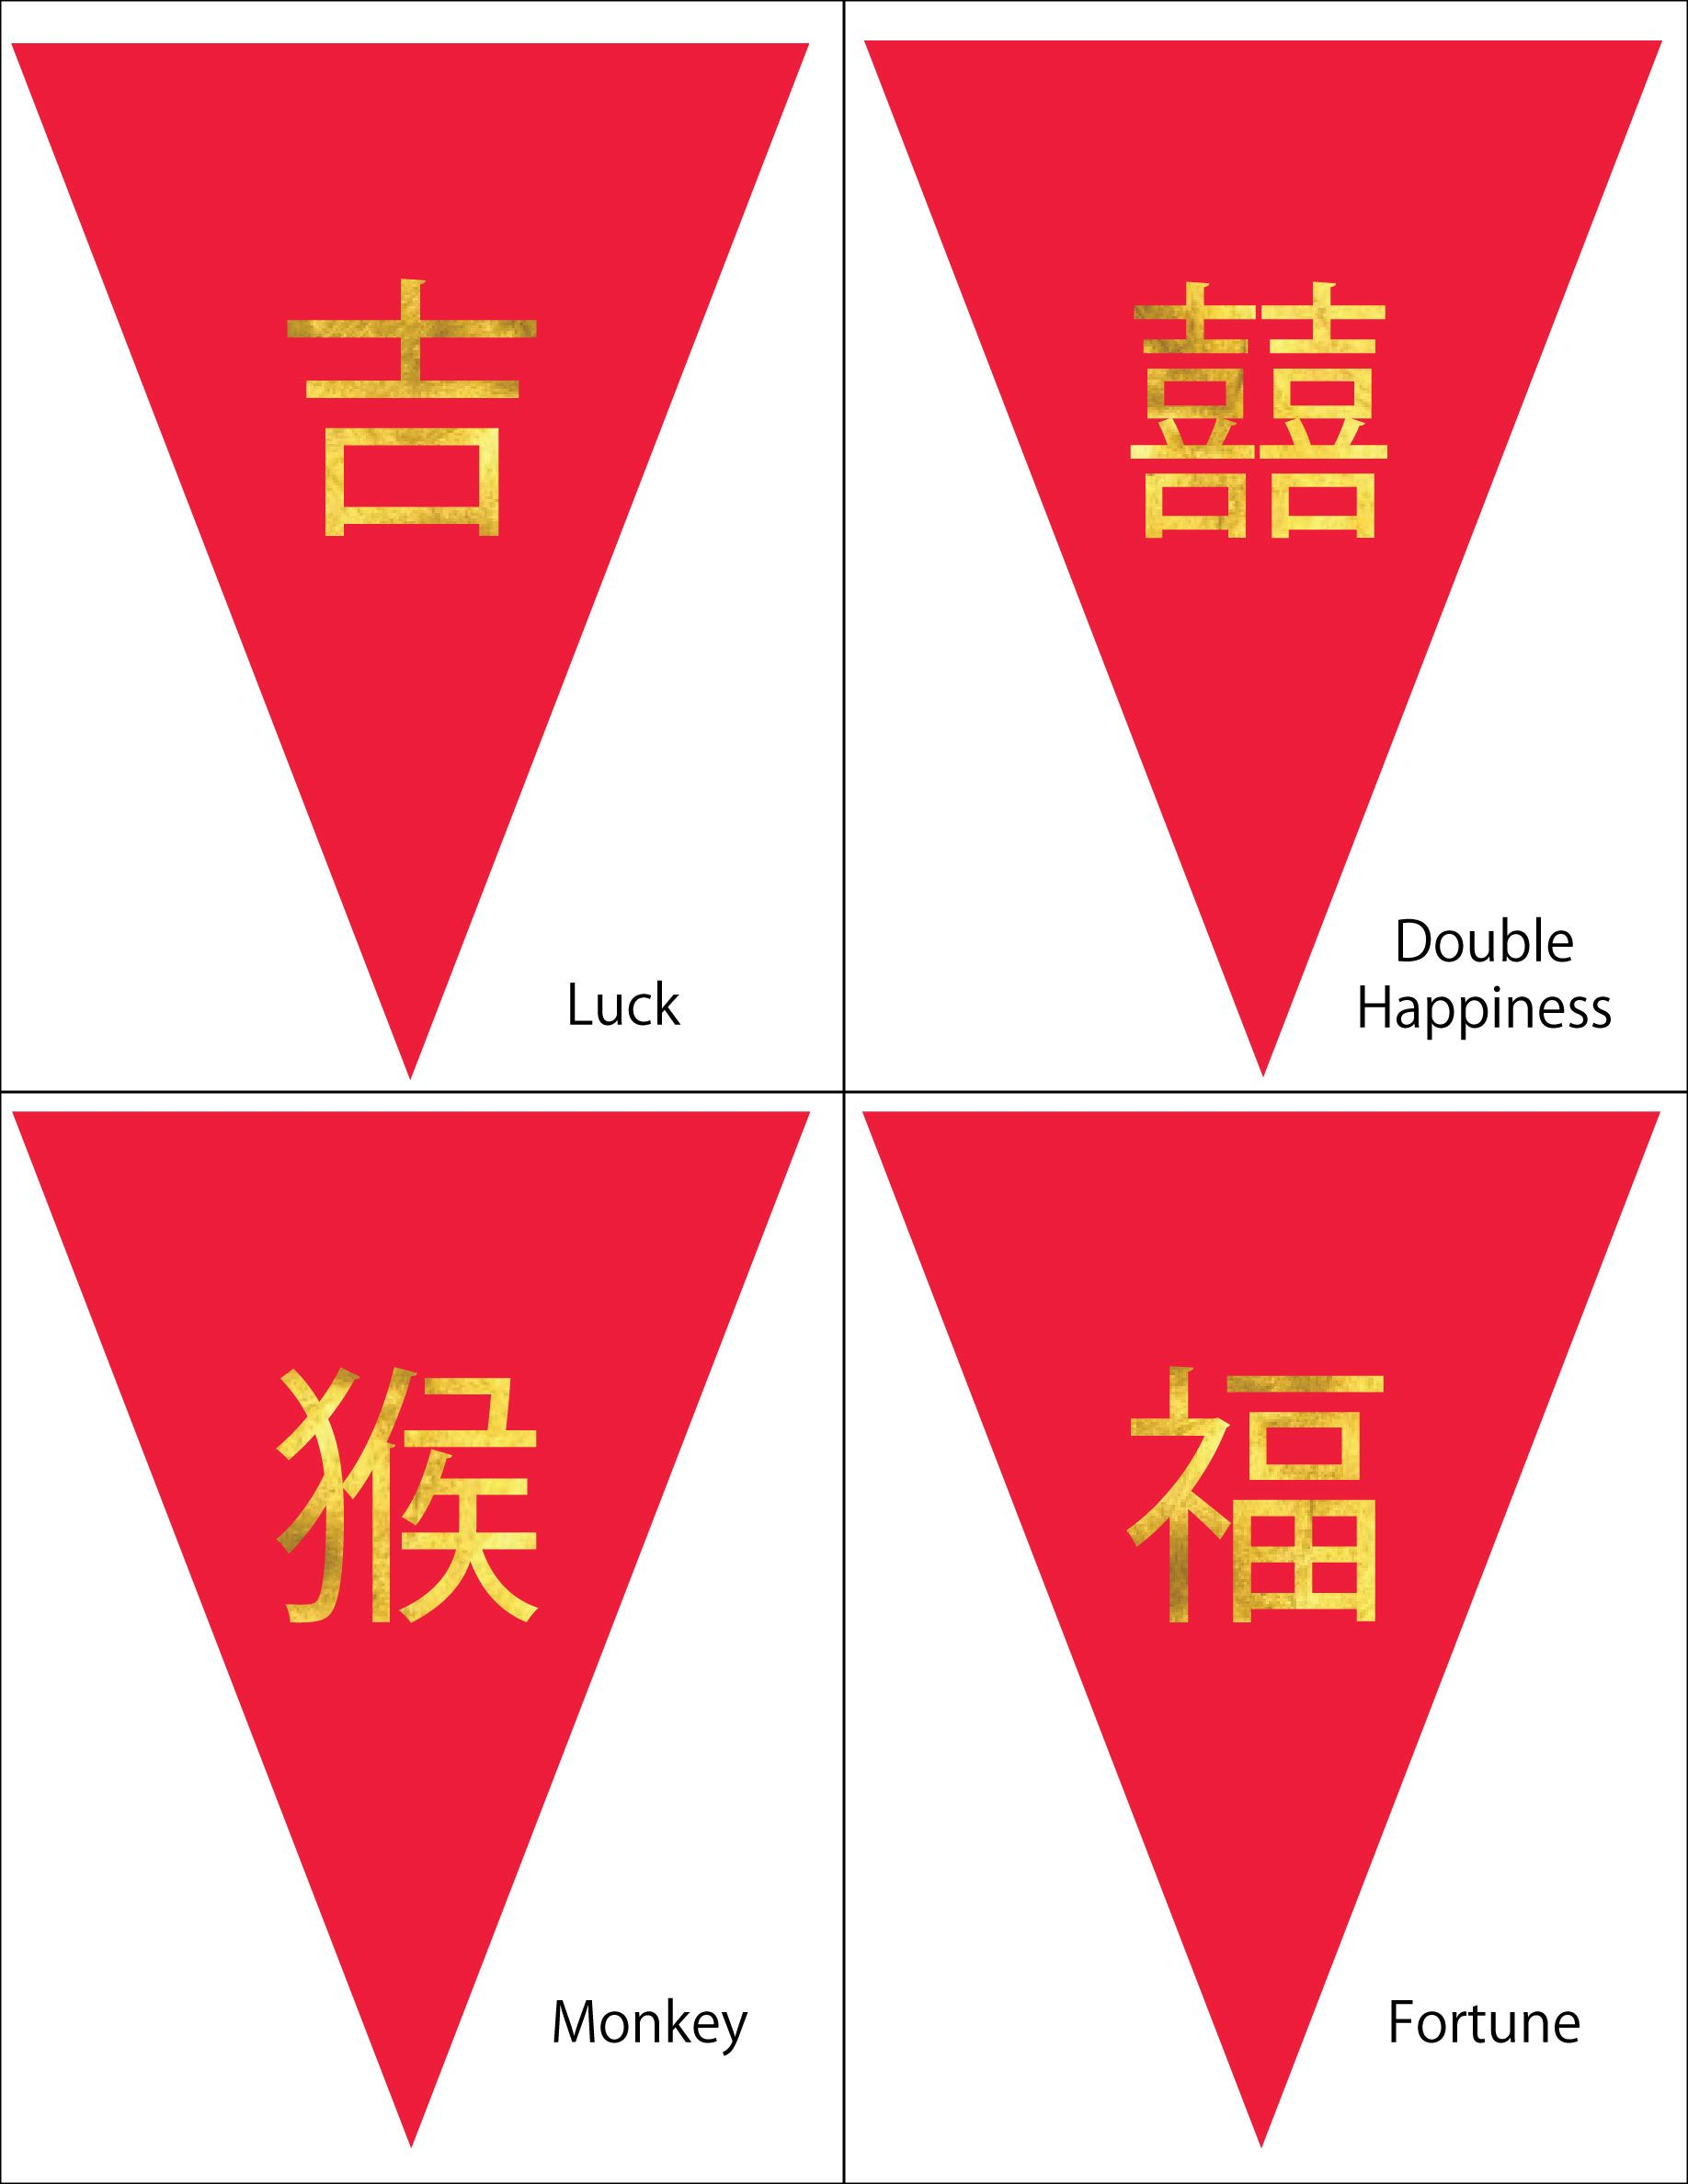 chinese new year free printable you can create your very own pennant flag banner using these flags decorating for the chinese new year 2016 year of the